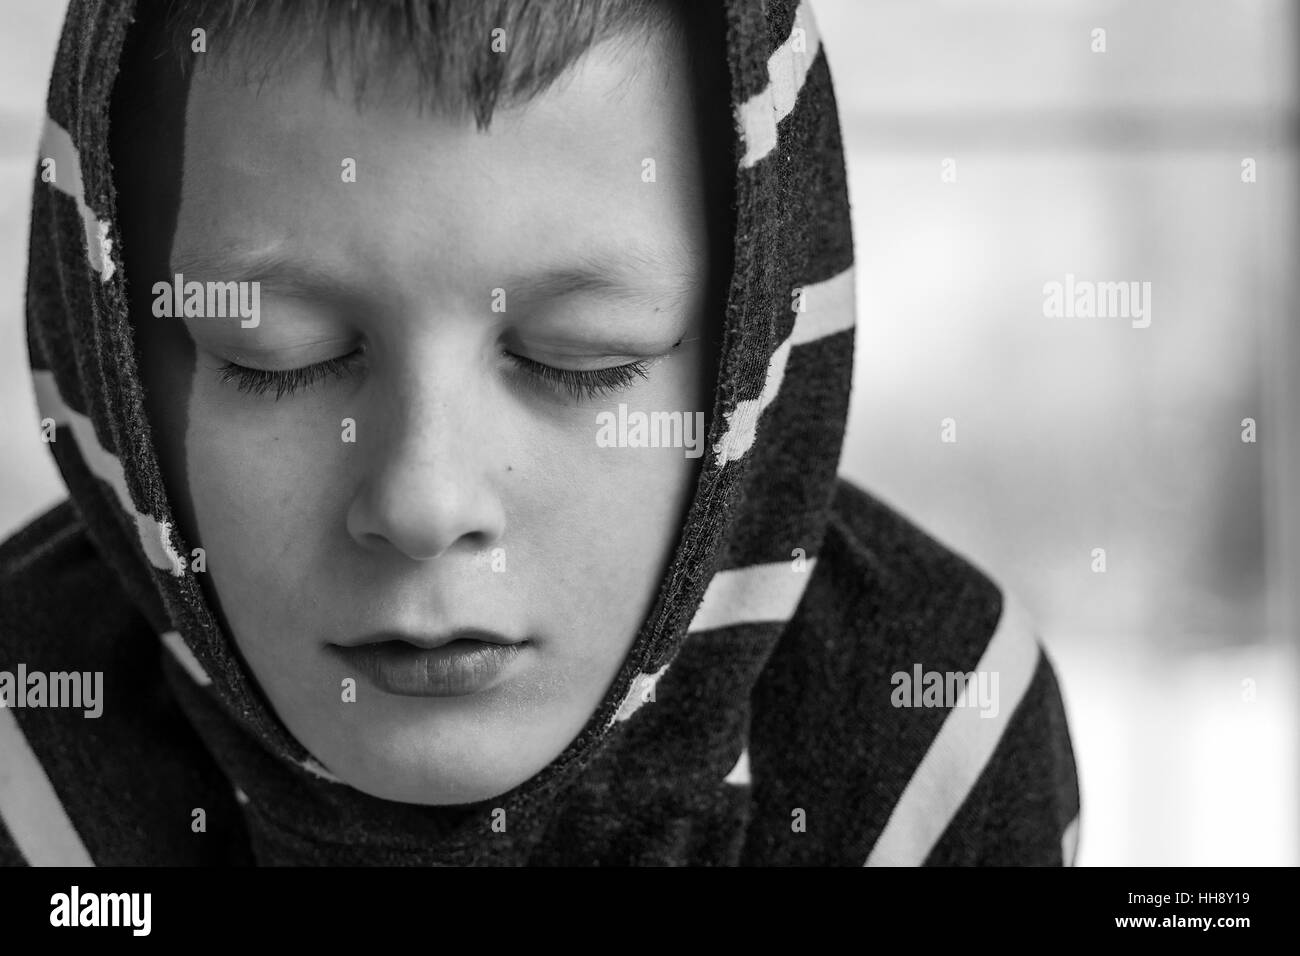 Sad Boy. Teenager with Sad Expression Face Close Up. Depression, Loneliness and Stress Concept. - Stock Image